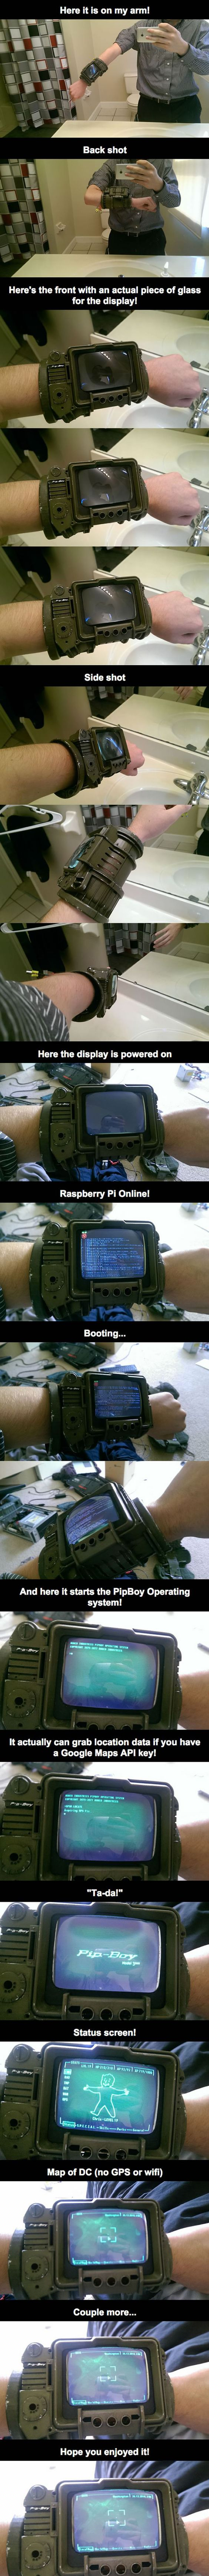 This guy made a PipBoy 3000A using Rasberry Pi